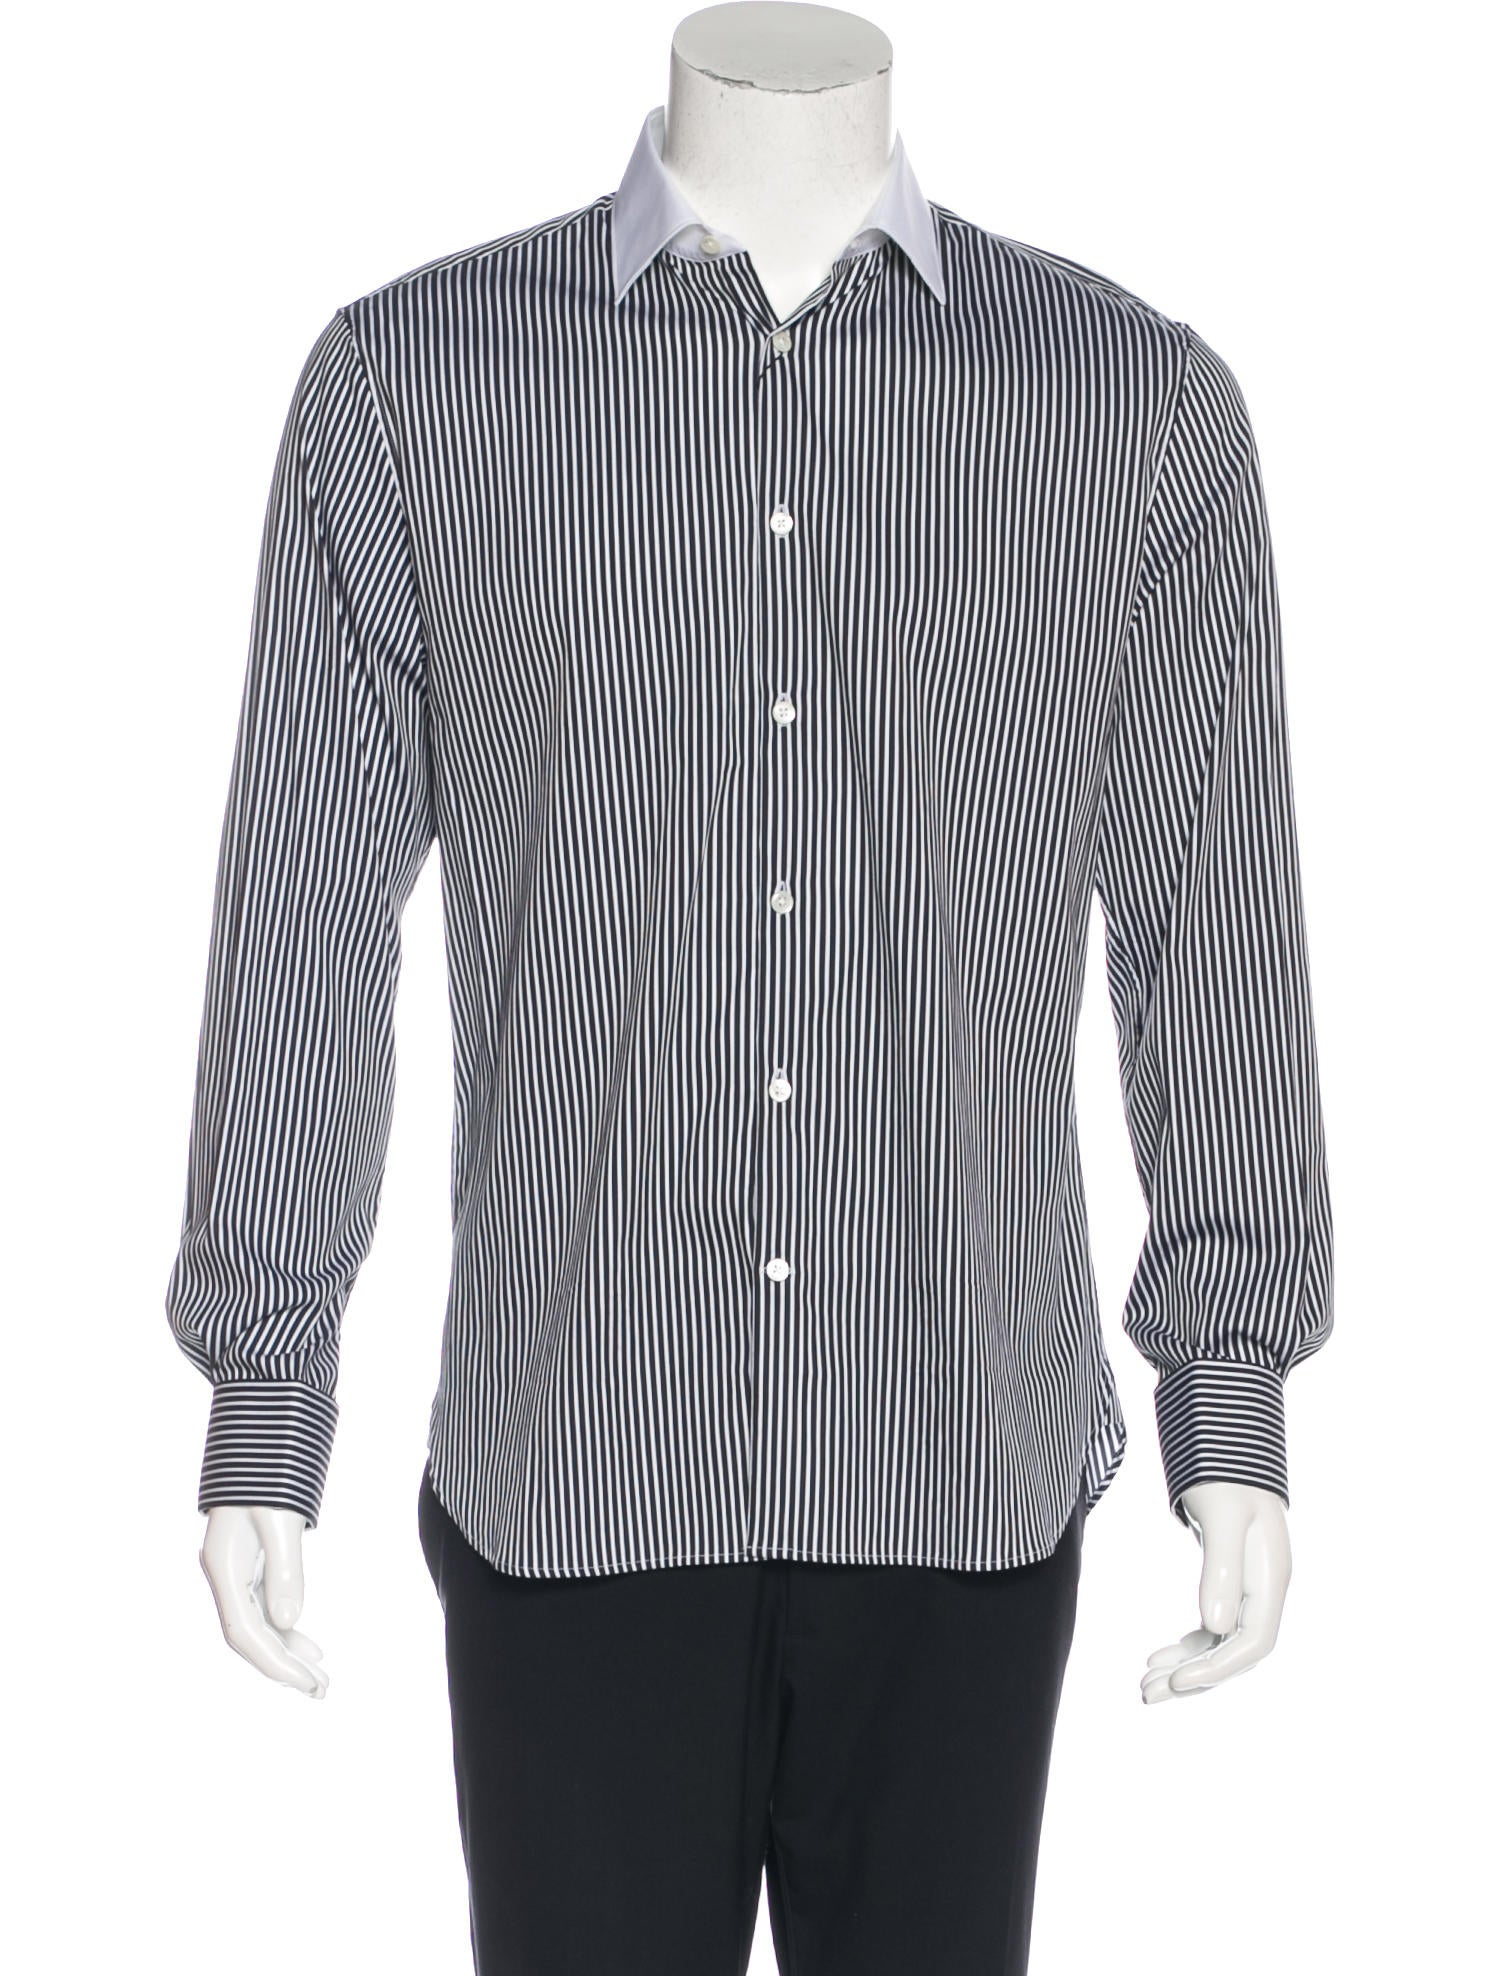 John varvatos slim fit french cuff shirt clothing for French cuff slim fit dress shirt